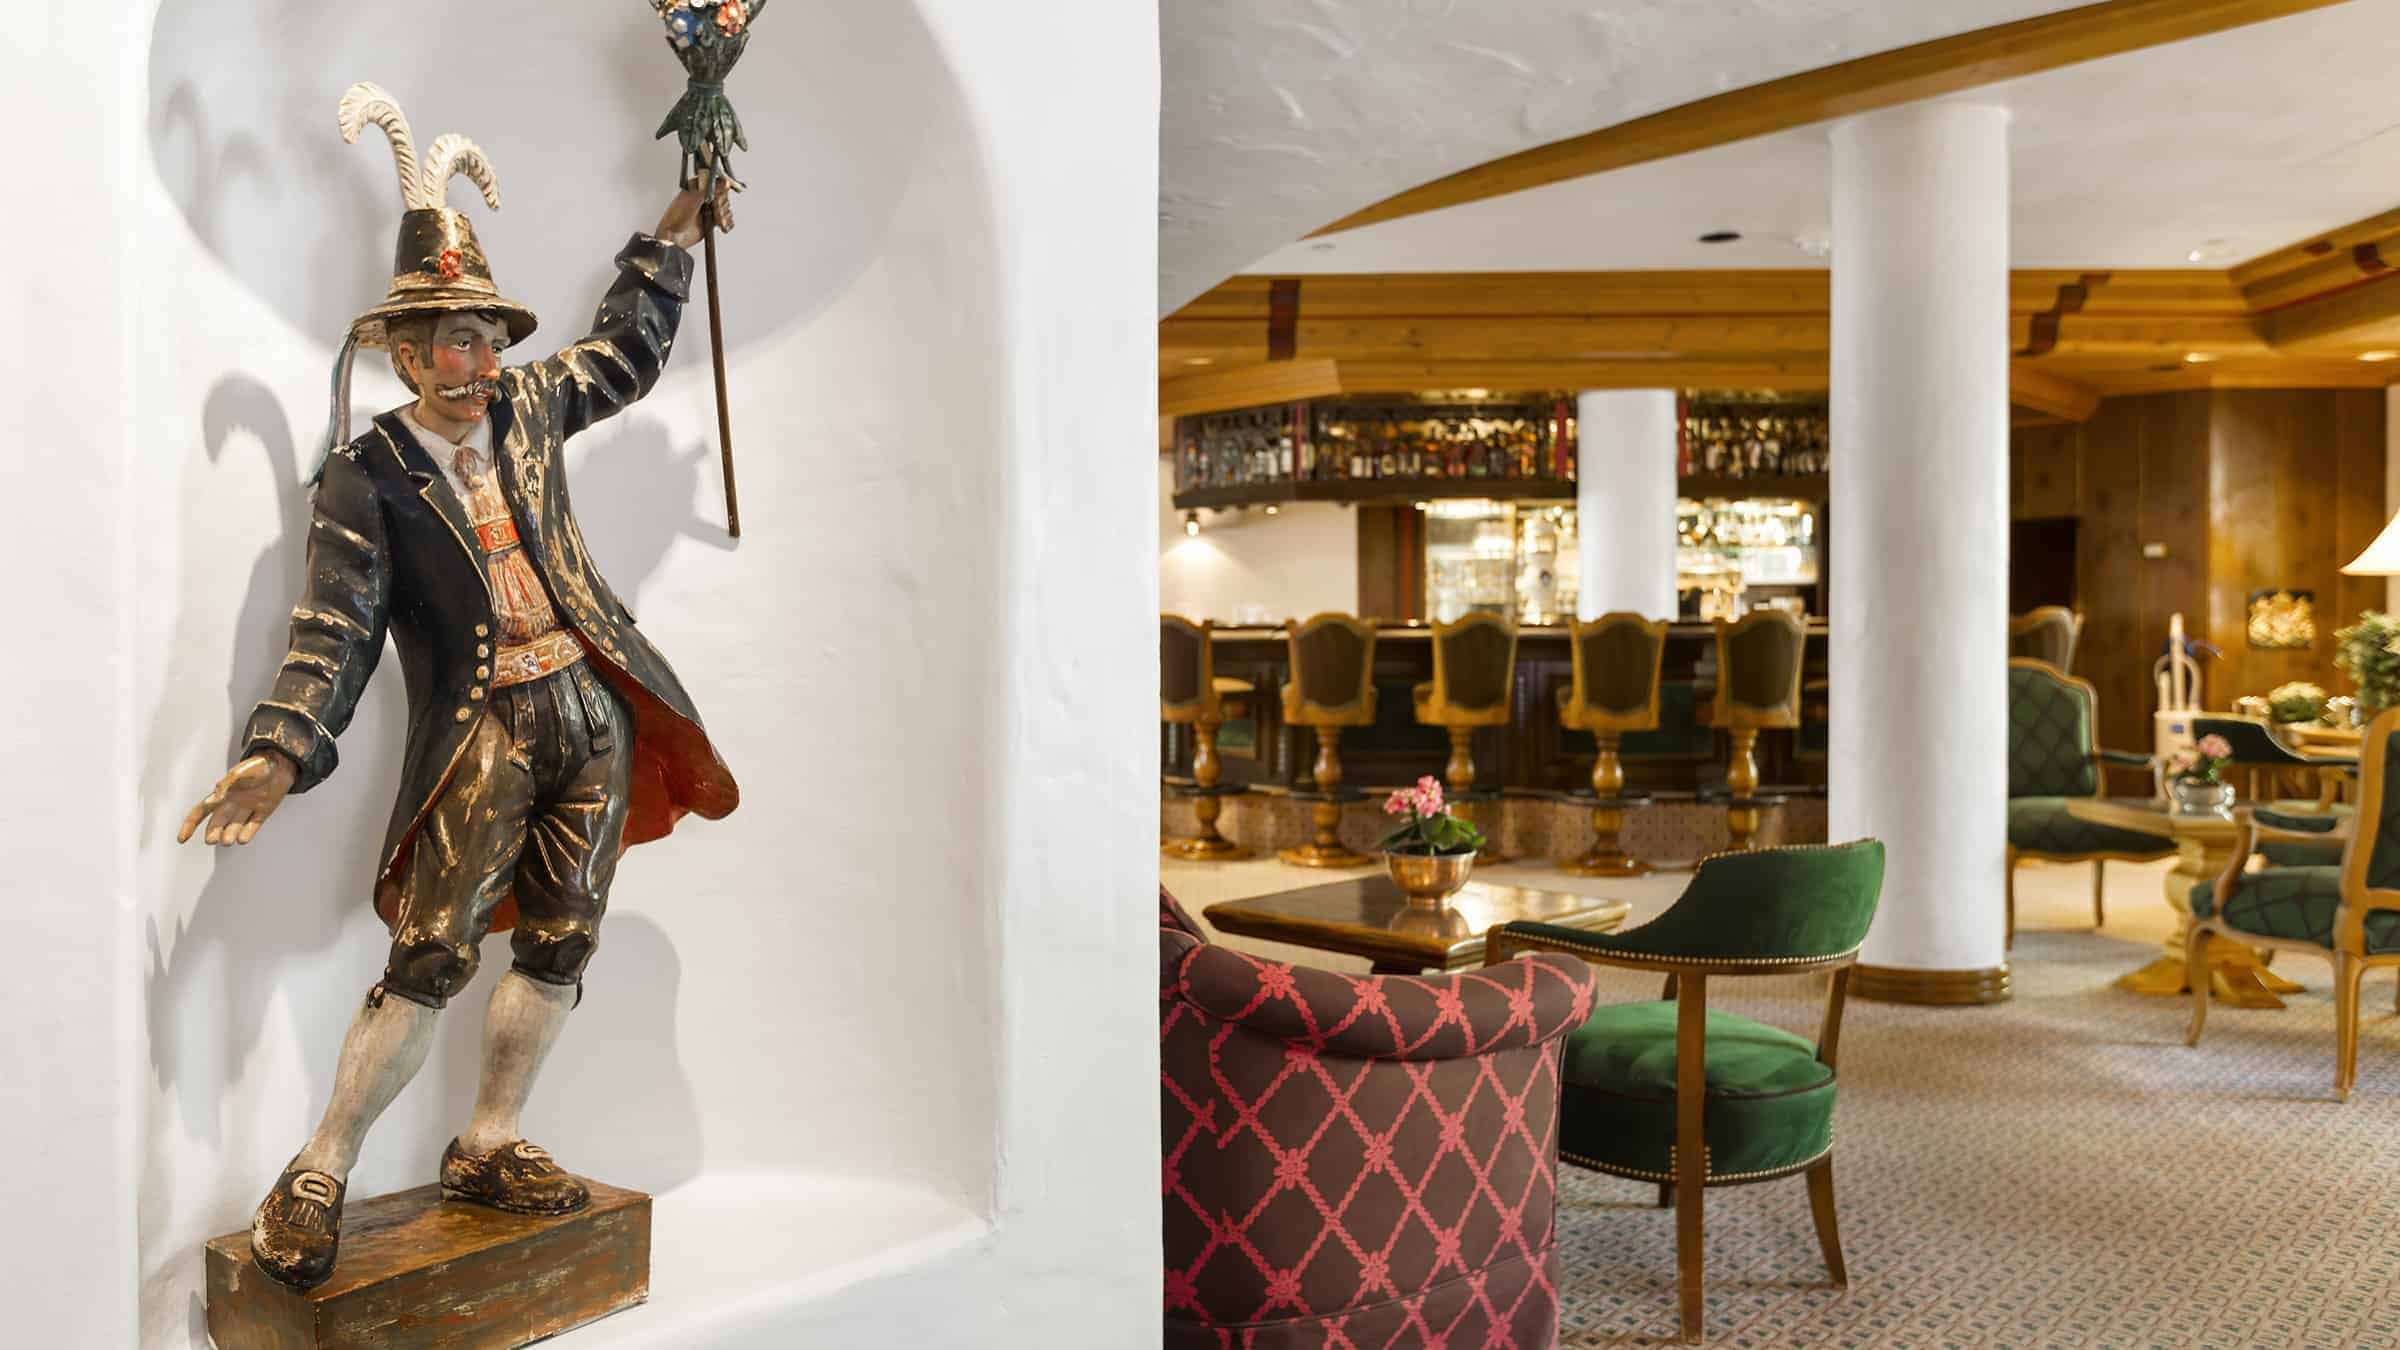 statue on recessed dsplay area on wall, and view of bar in the background